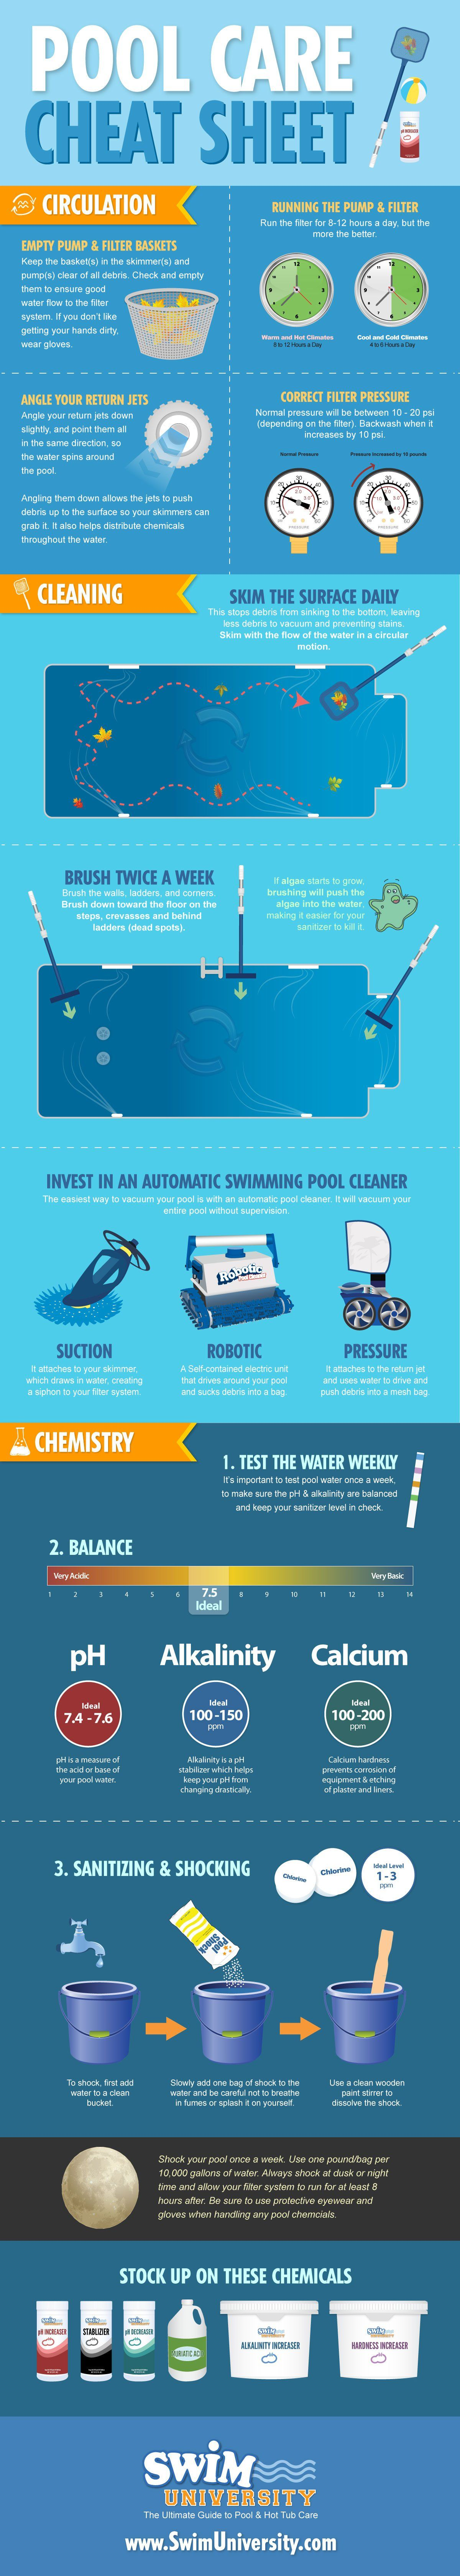 The Pool Care Cheat Sheet Infographic Swimming Pools